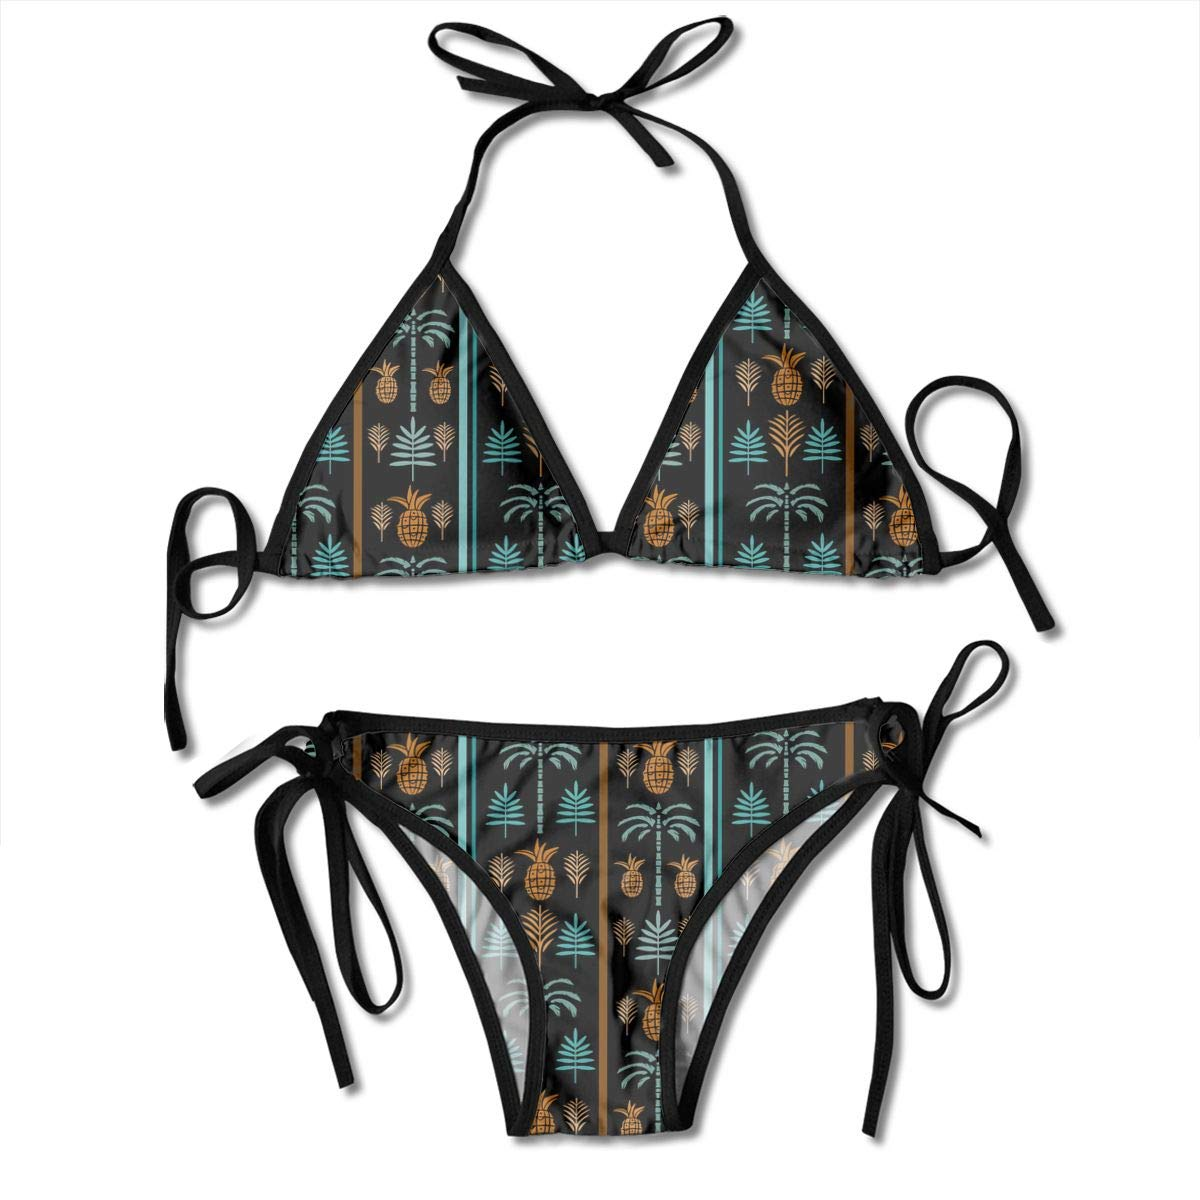 12b4f670a5 Amazon.com : Silhouettes Tropical Coconut Palm Pattern Bikini Set  Adjustable Halter Sexy Women's Swimsuits Swimwear for Vacations : Sports &  Outdoors